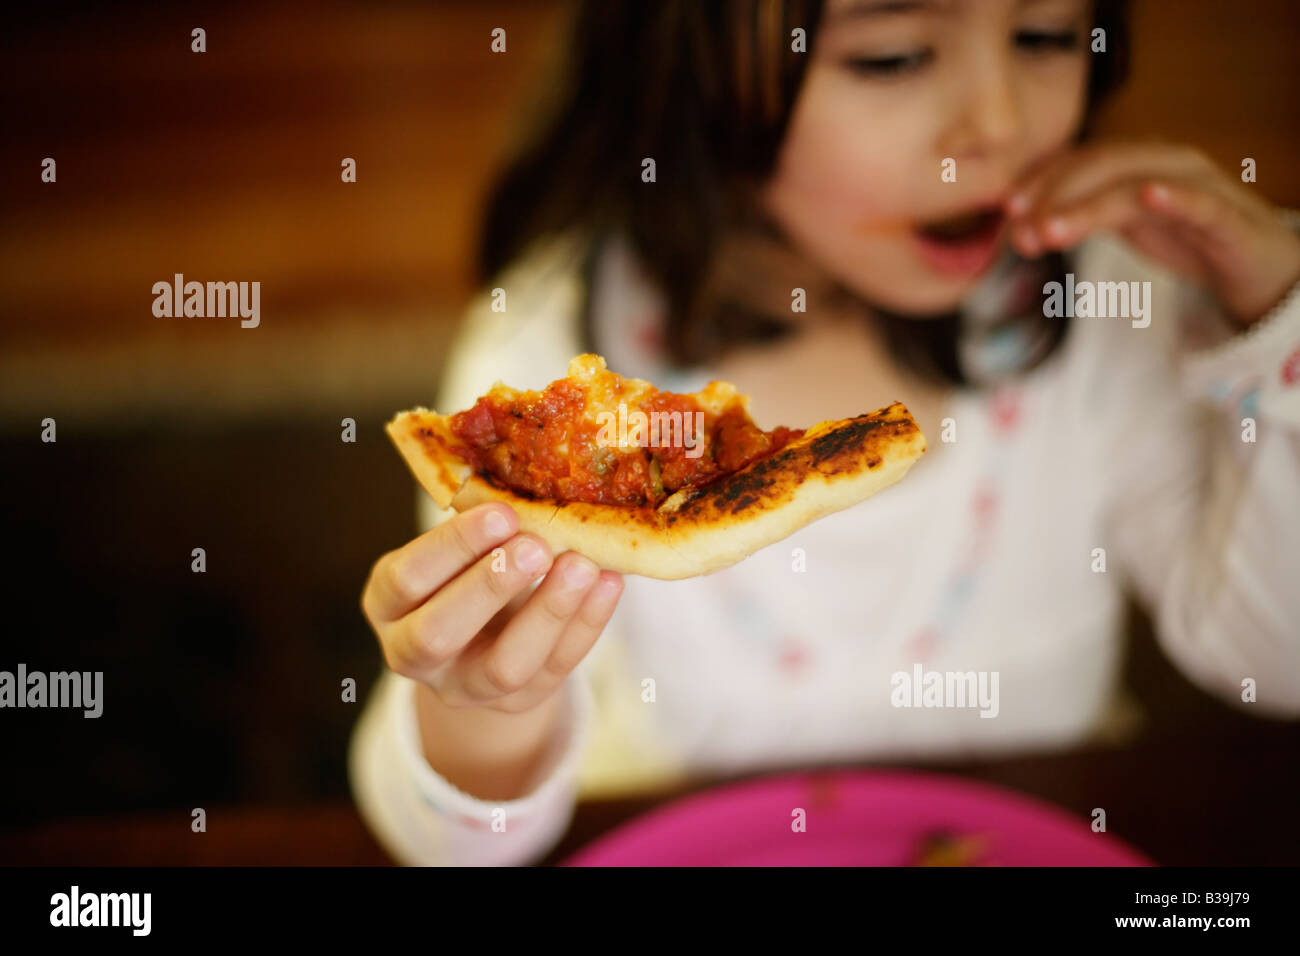 Homemade Pizza Five year old girl takes bite of very hot pizza fresh from oven - Stock Image